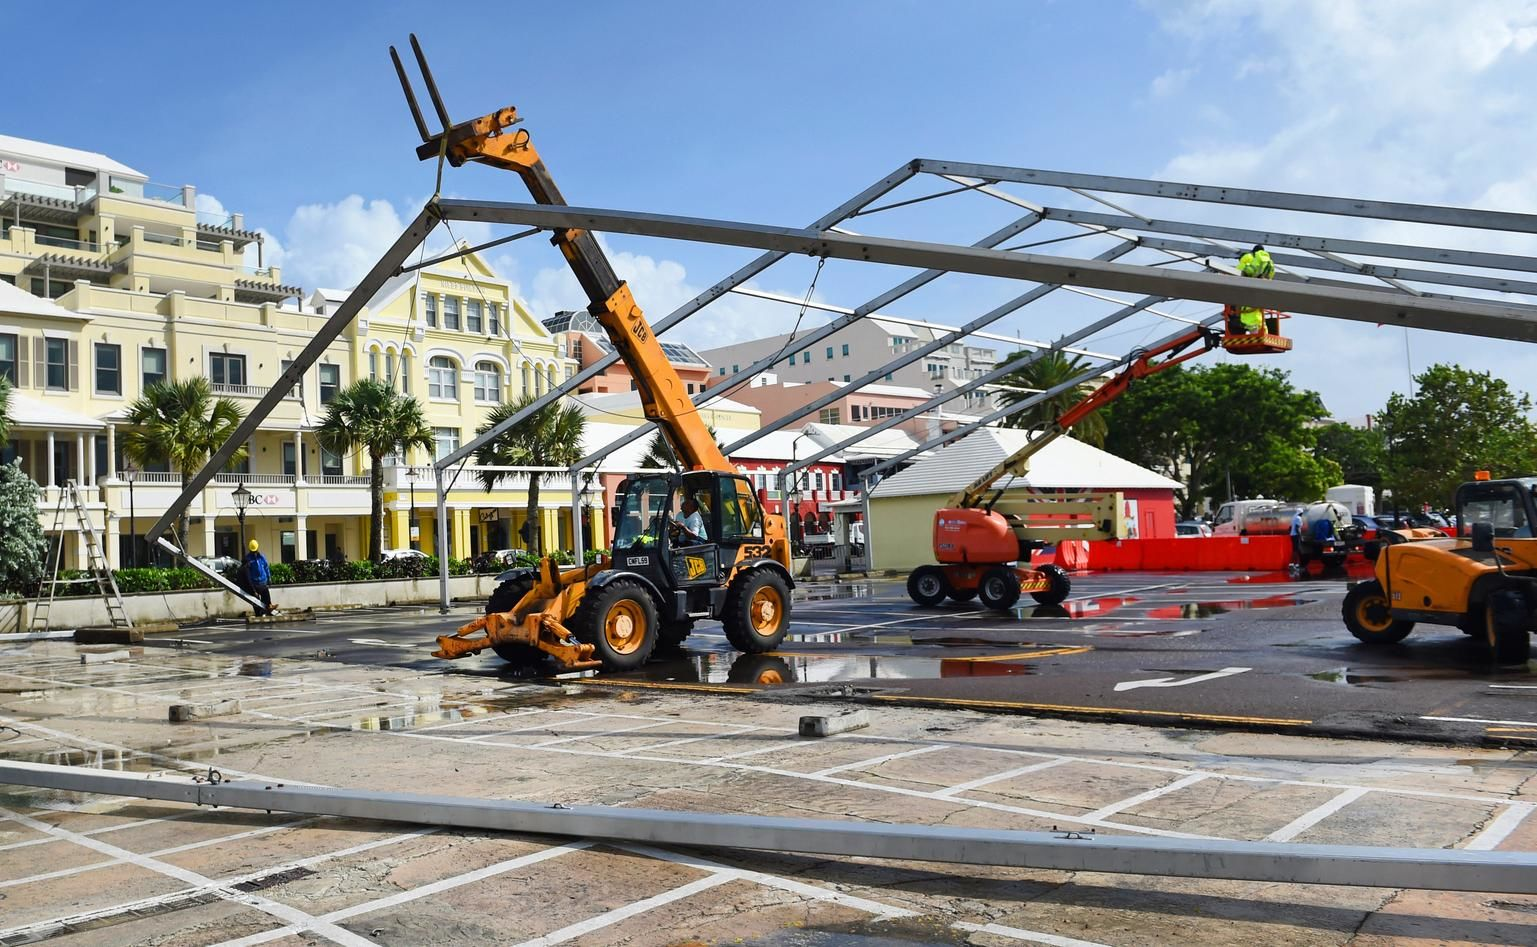 Workers take down a tent frame in preparation for Hurricane Humberto in Hamilton, Bermuda, Wednesday, Sept. 18, 2019. Bermuda's government called up troops and urged people on the British Atlantic island to make final preparations for an expected close brush Wednesday with Hurricane Humberto, a powerful Category 3 storm. Authorities ordered early closings of schools, transportation and government offices. (AP Photo/Akil J. Simmons)